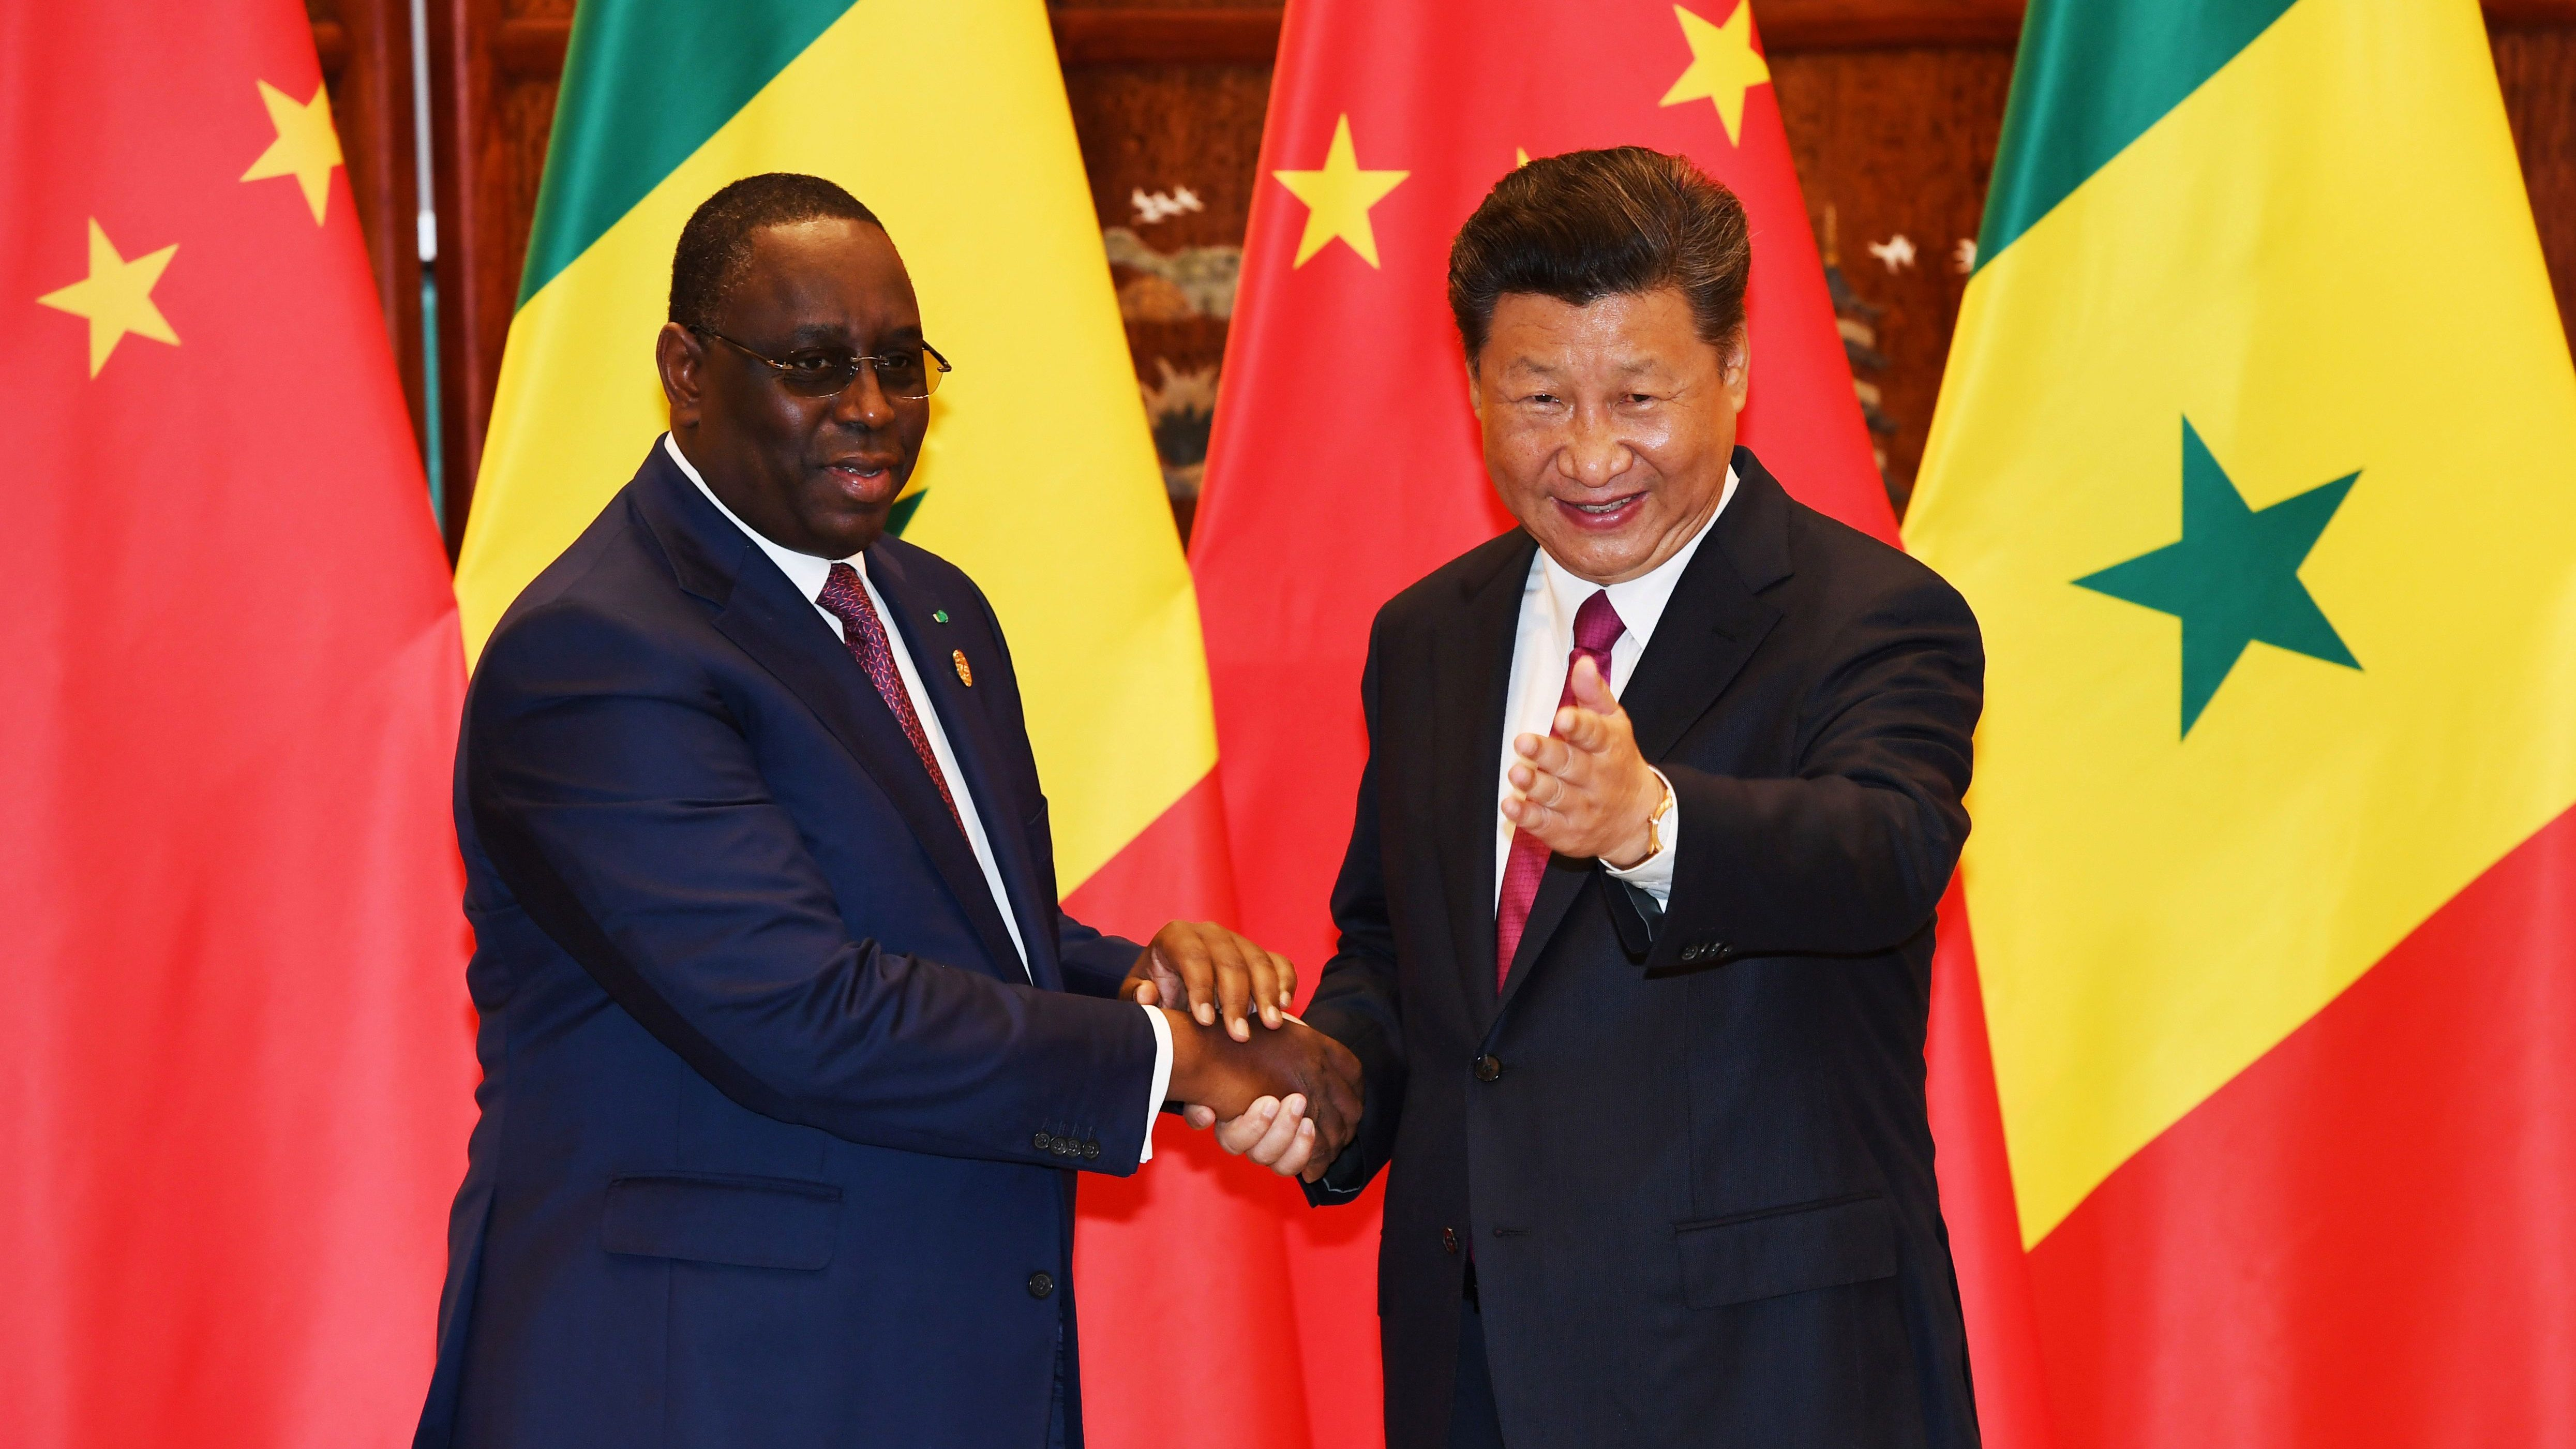 China's President Xi Jinping meets with Senegalese President Macky Sall in Hangzhou